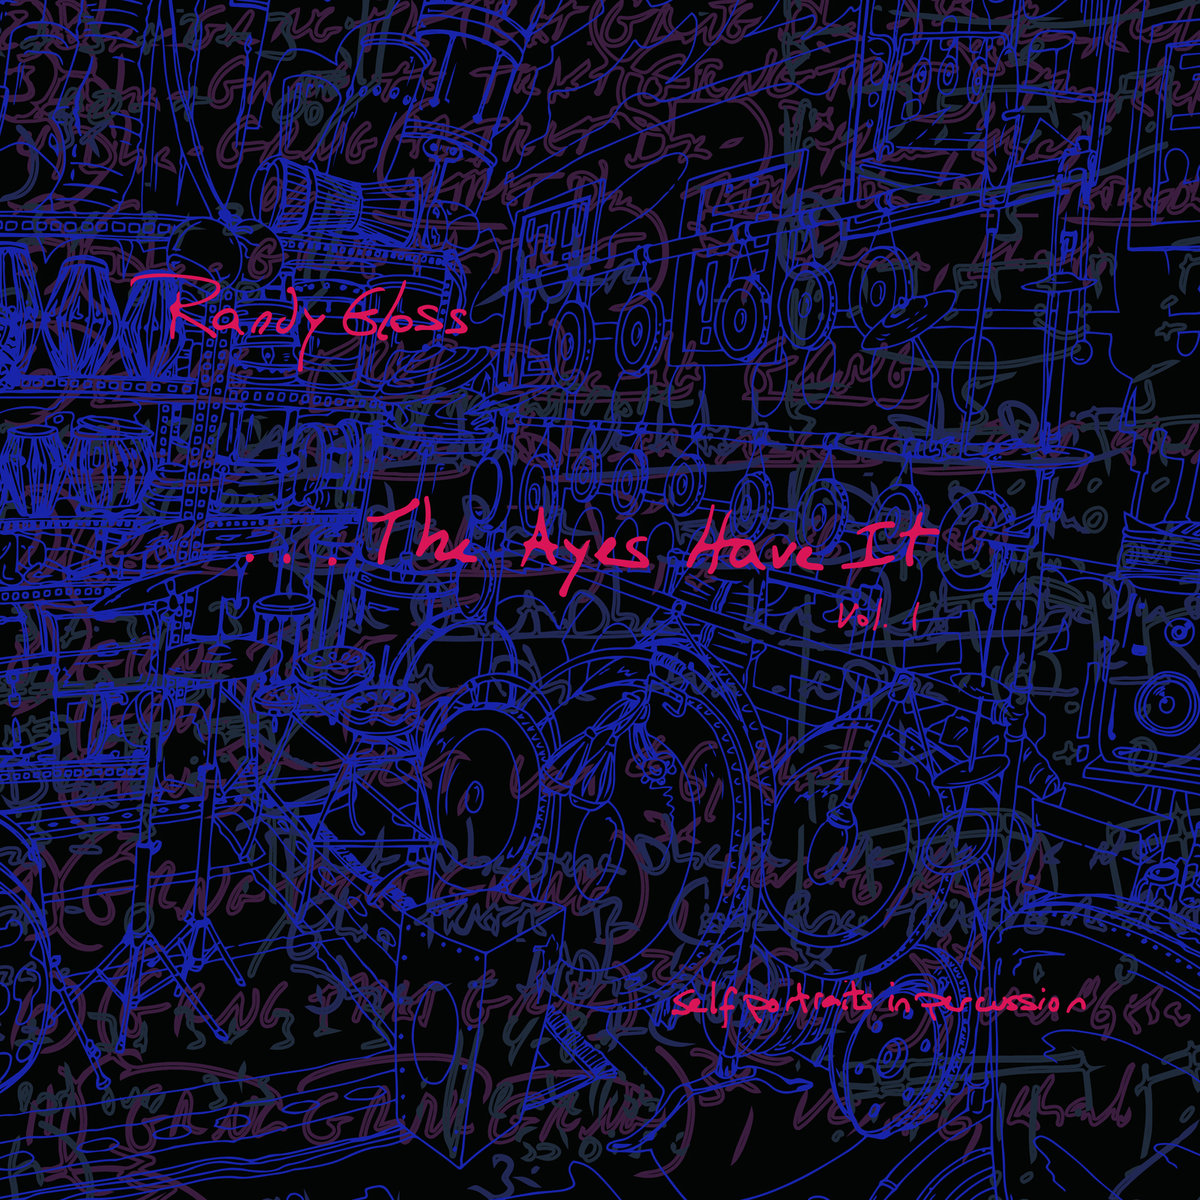 Randy Gloss | The Ayes Have It (Vol. I)